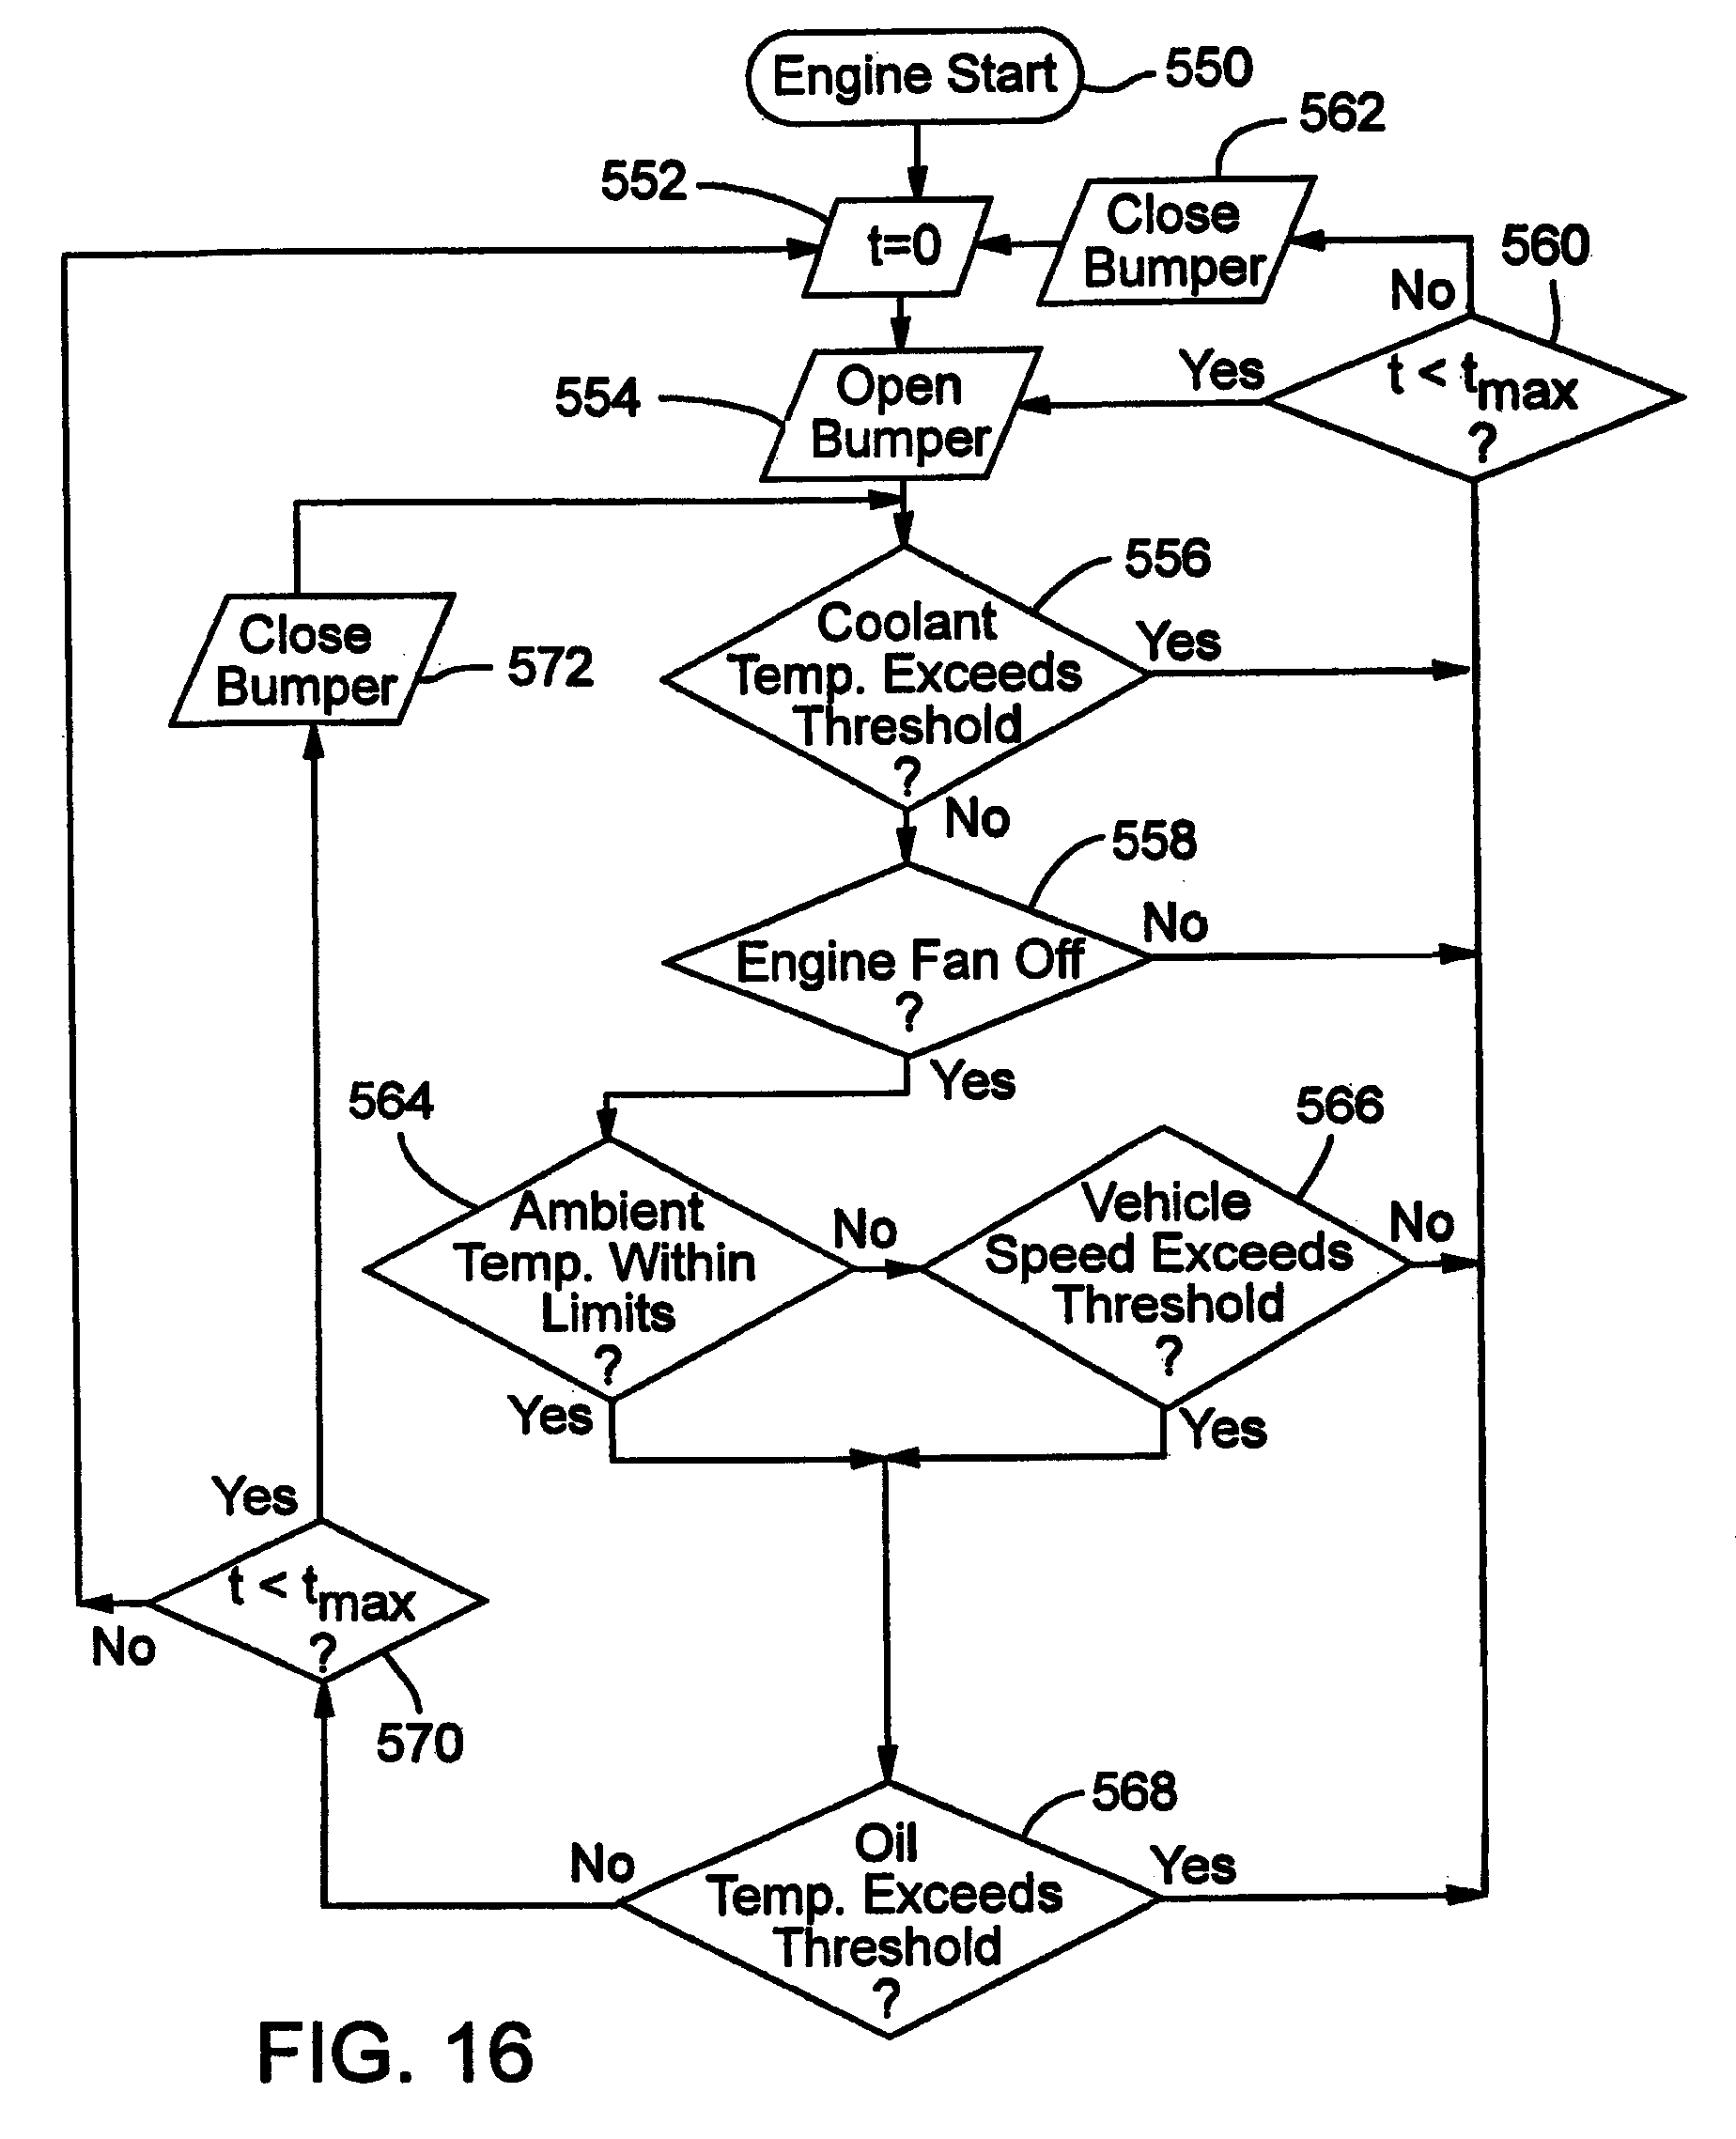 western star truck wiring diagrams for 2007